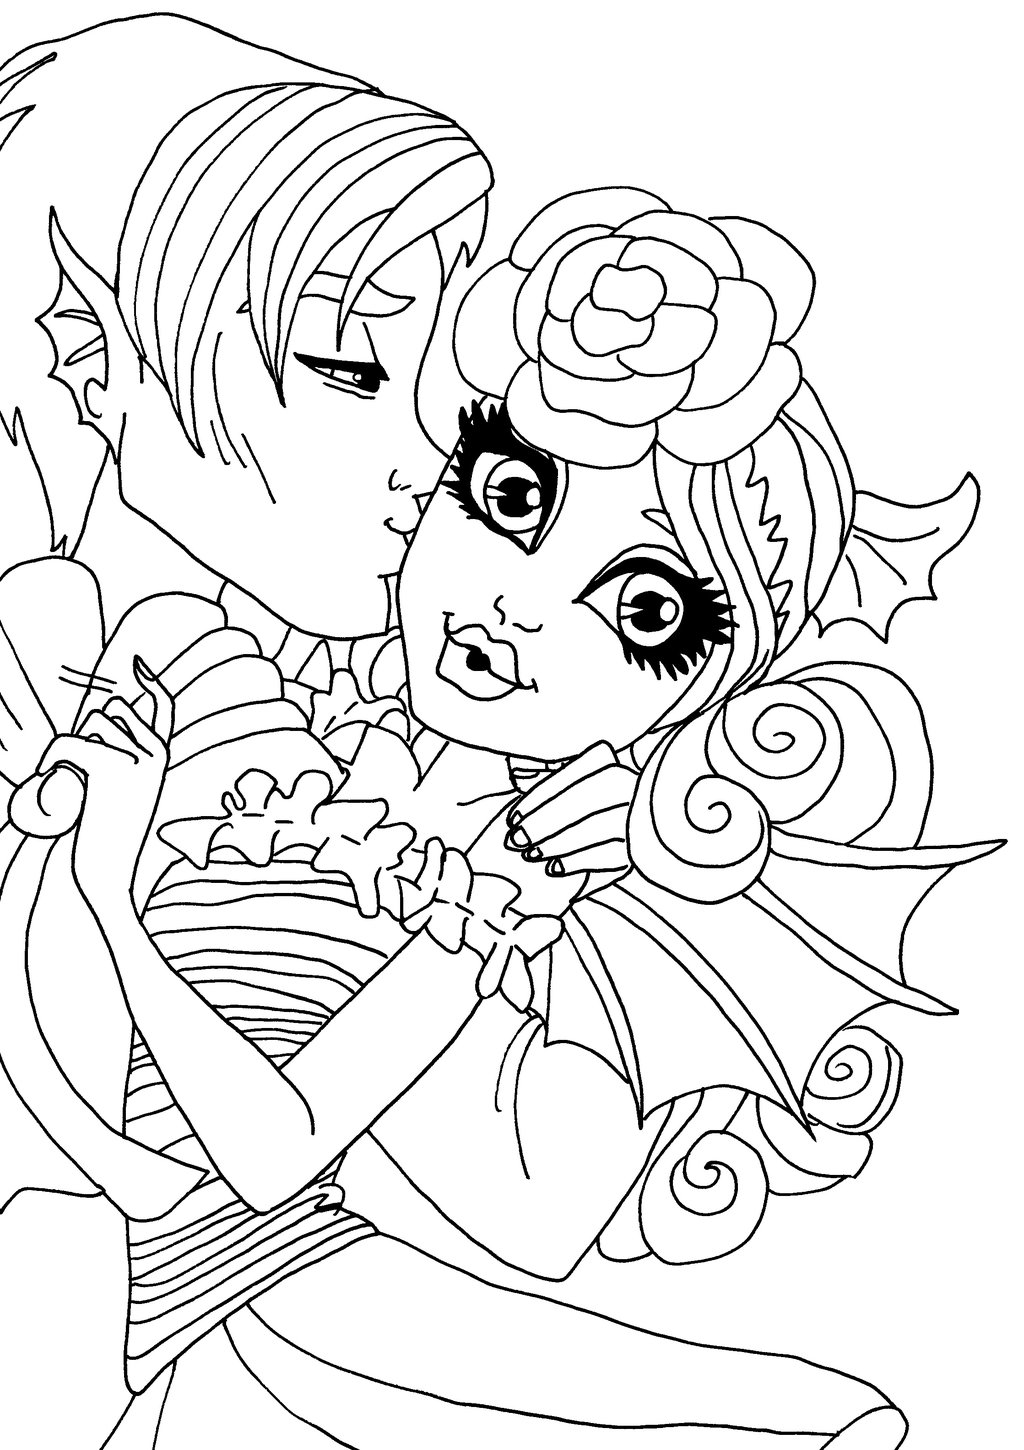 1024x1450 Images Of Monster High Characters Coloring Pages Many Free